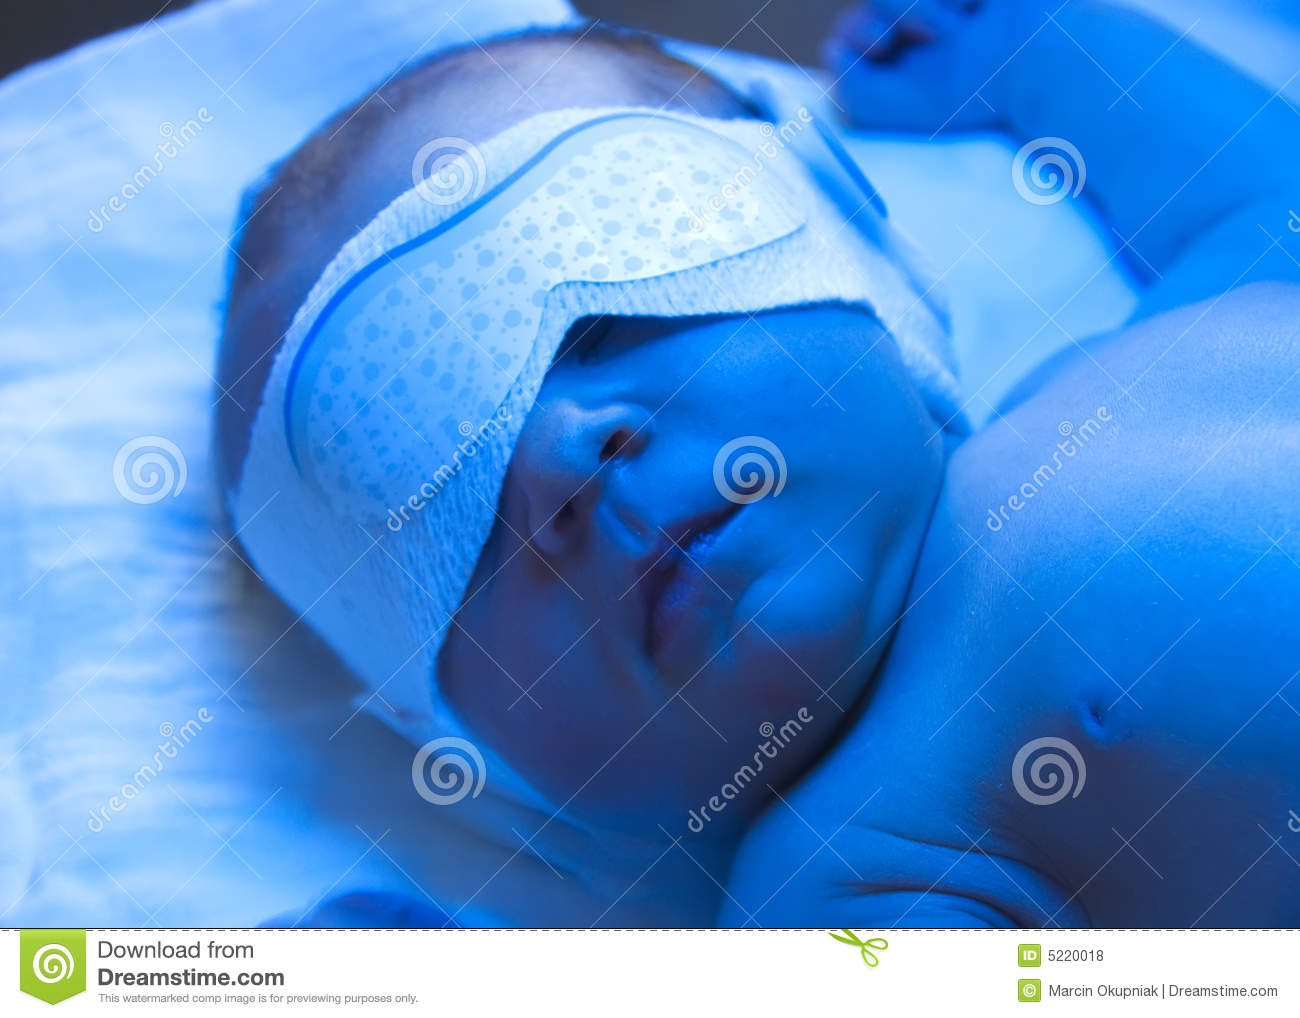 Newborn Babies Jaundice Treatment Newborn Jaundice Treatment Stock Photo Image Of Diaper